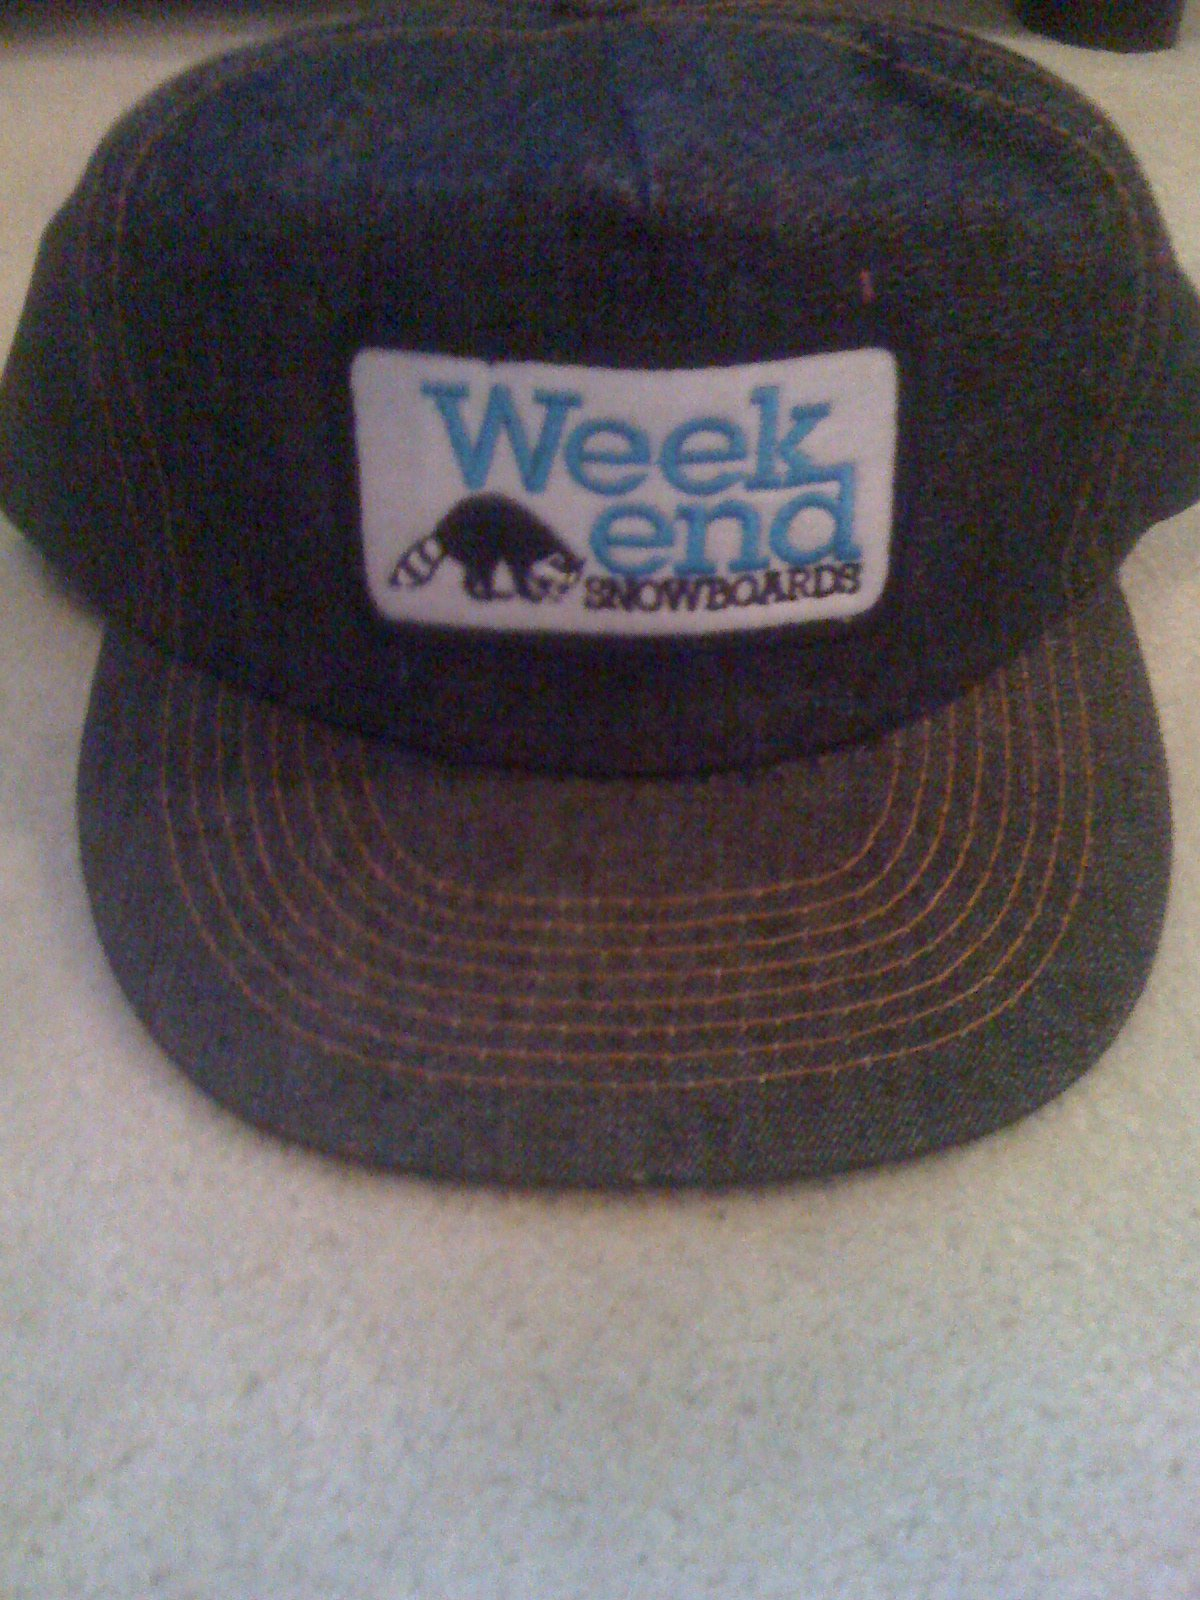 Weekend snowboards hat